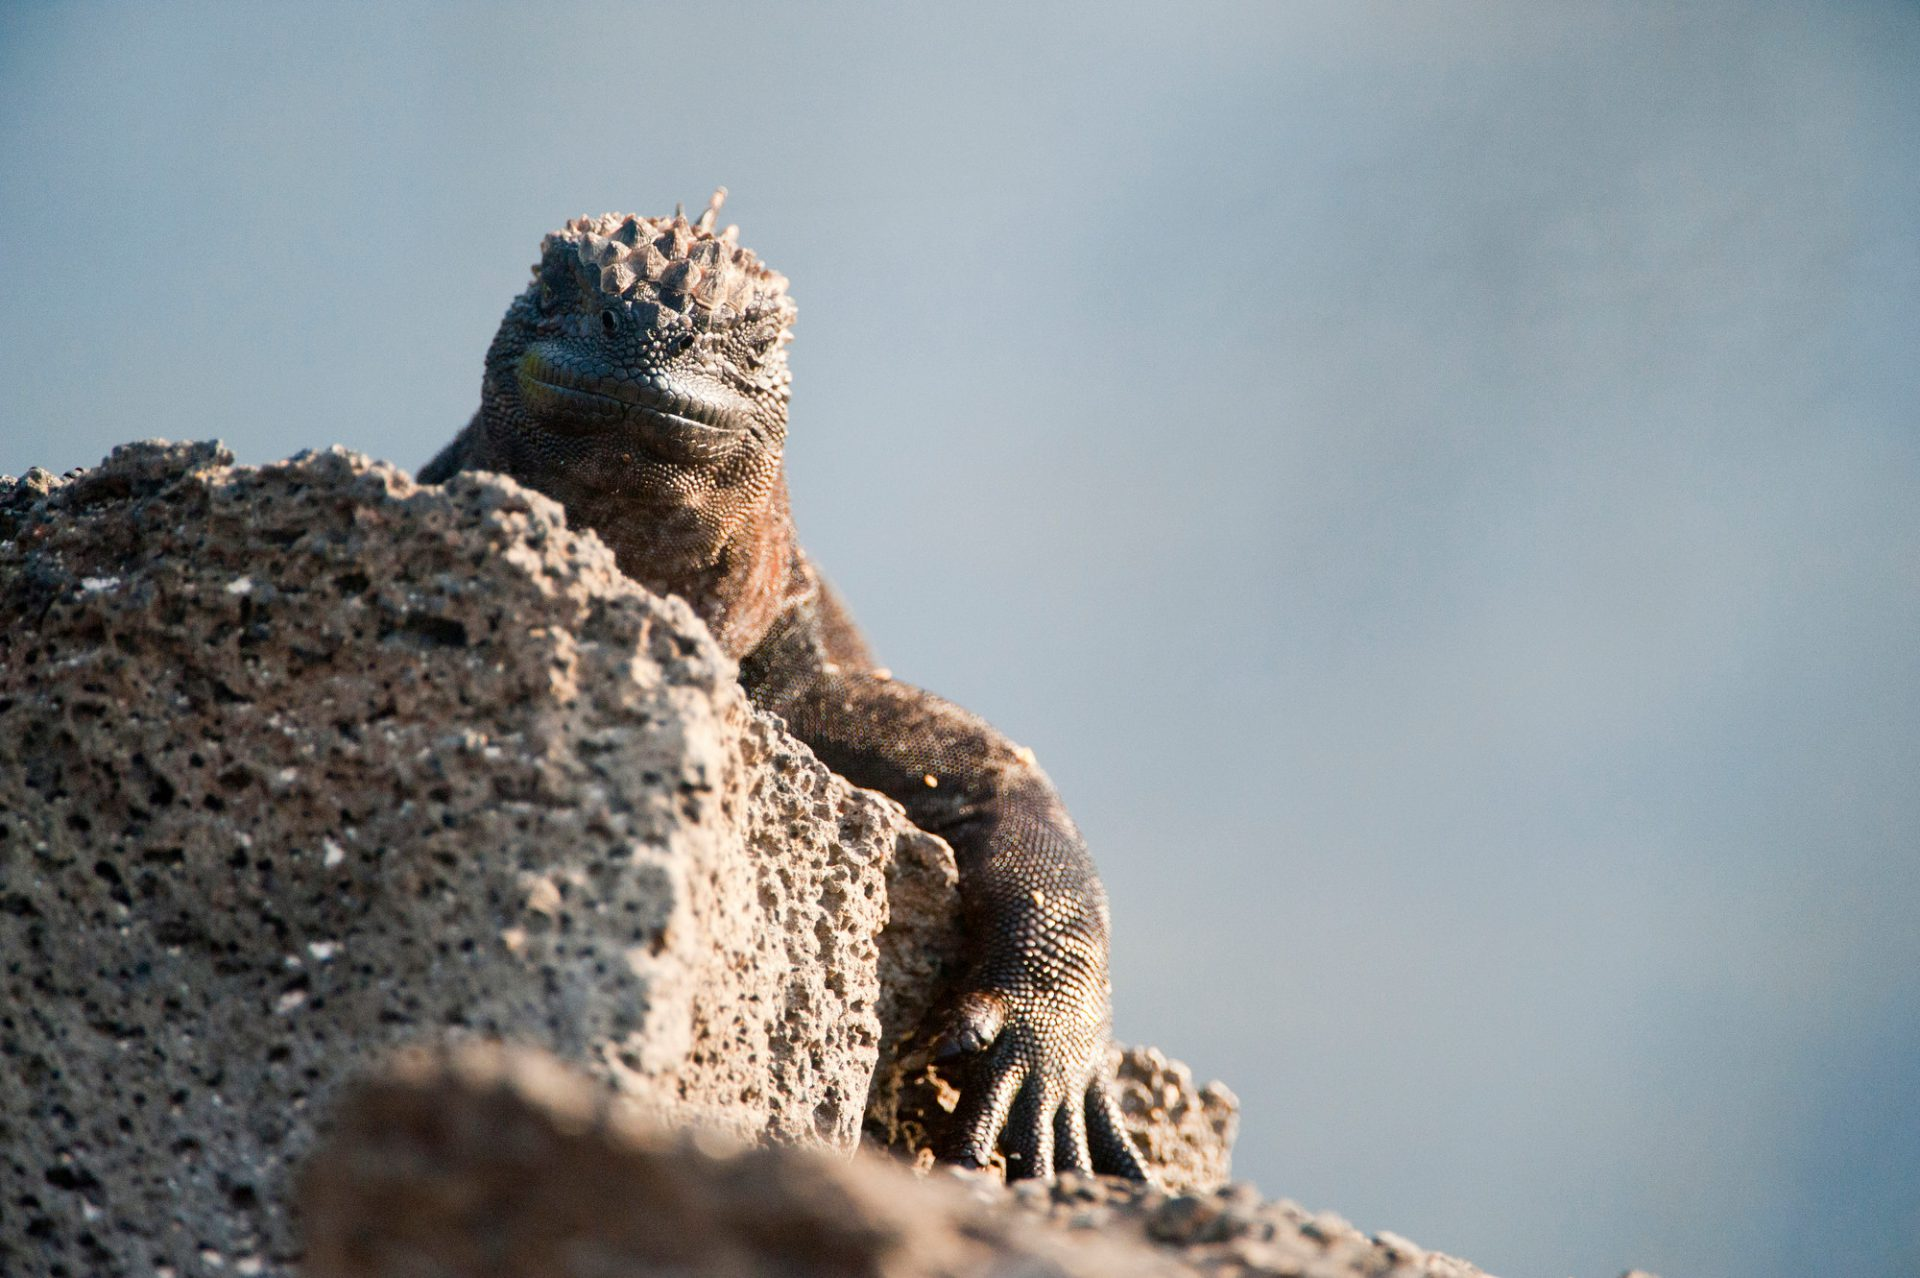 Photo: A marine iguana (Amblyrhynchus cristatus) on Santa Cruz Island, Galapagos National Park.